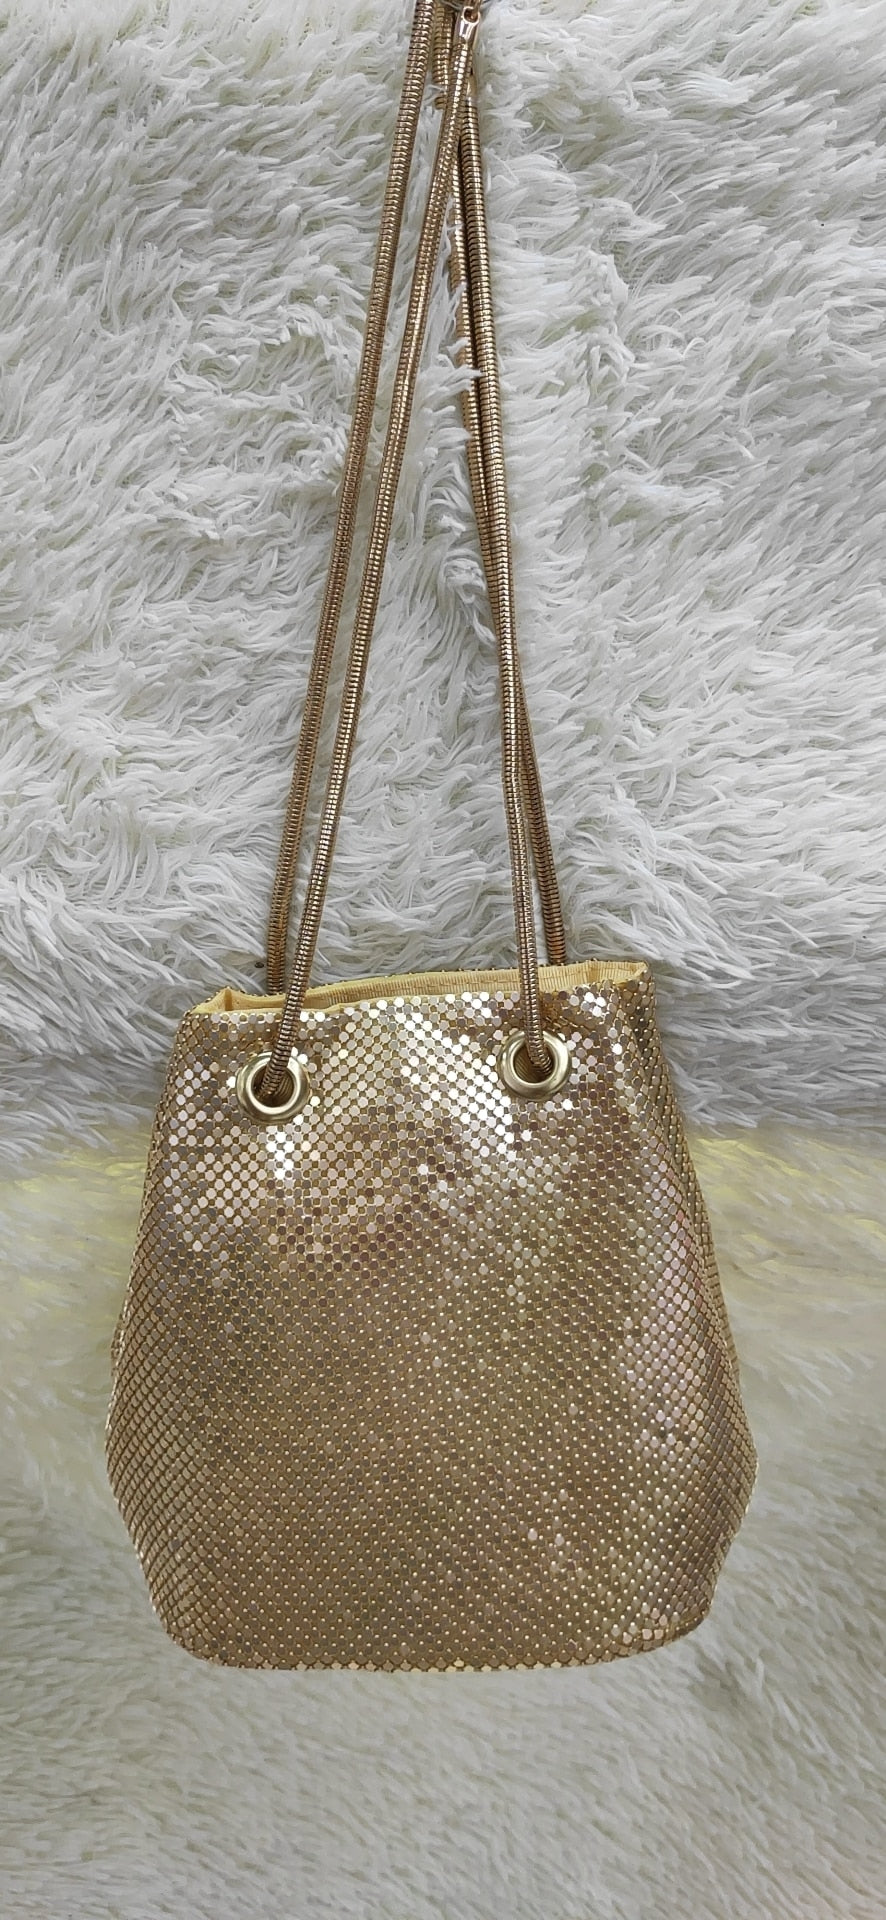 black Fashion Chain Shoulder Bag Evening Party Bucket Sequin Bag For Women 2018 Sliver Gold Purse girl Handbags Female dropship